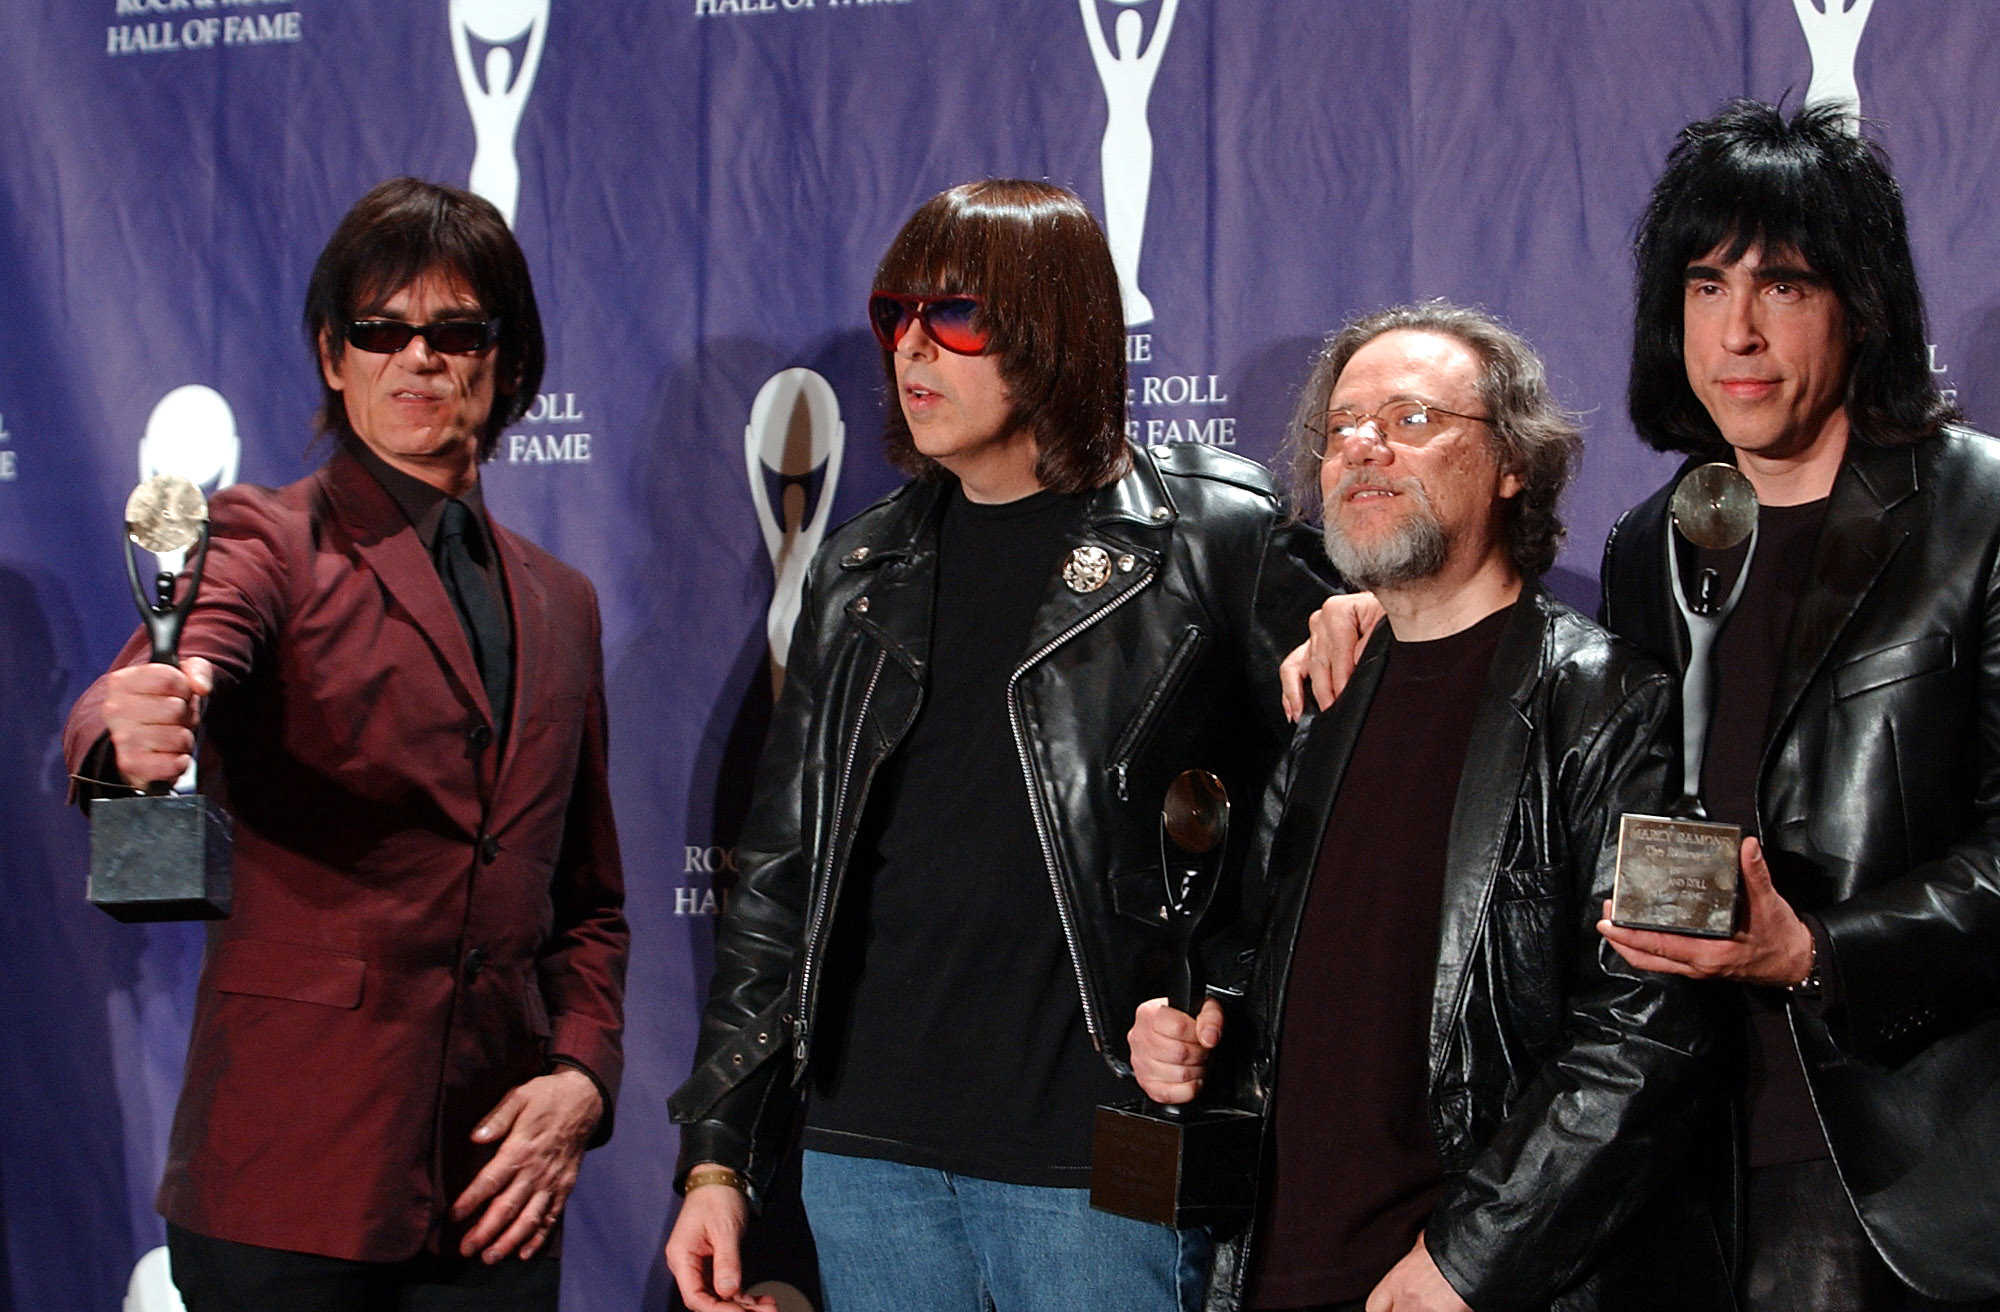 Members of the Ramones at their 2002 Rock and Roll Hall of Fame induction ceremony. AP Photo/Ed Betz, File.